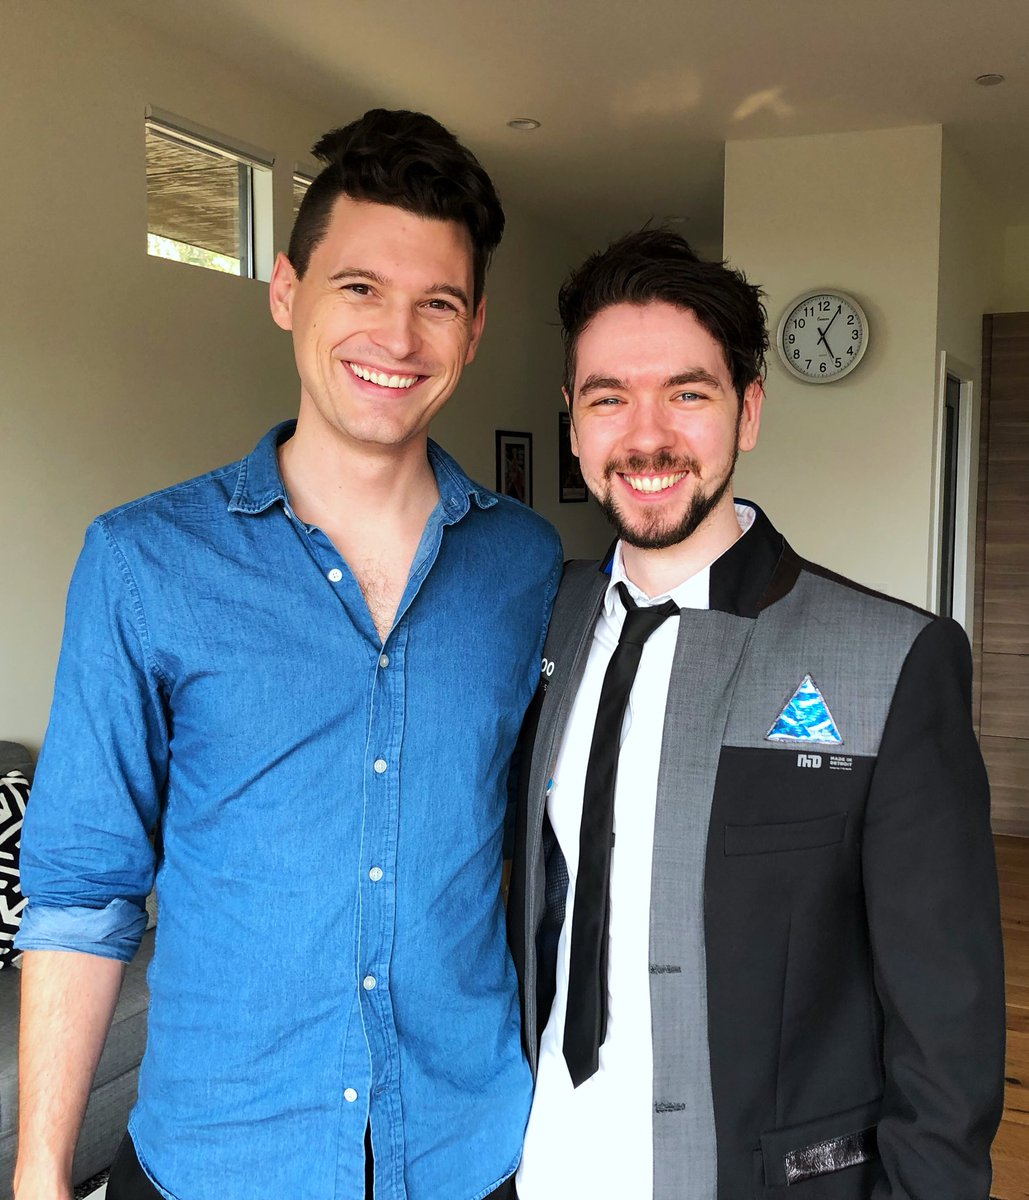 I finally tracked down @BryanDechart an incredibly person along with his wife @AmeliaRBlaire ! videos coming soon :)